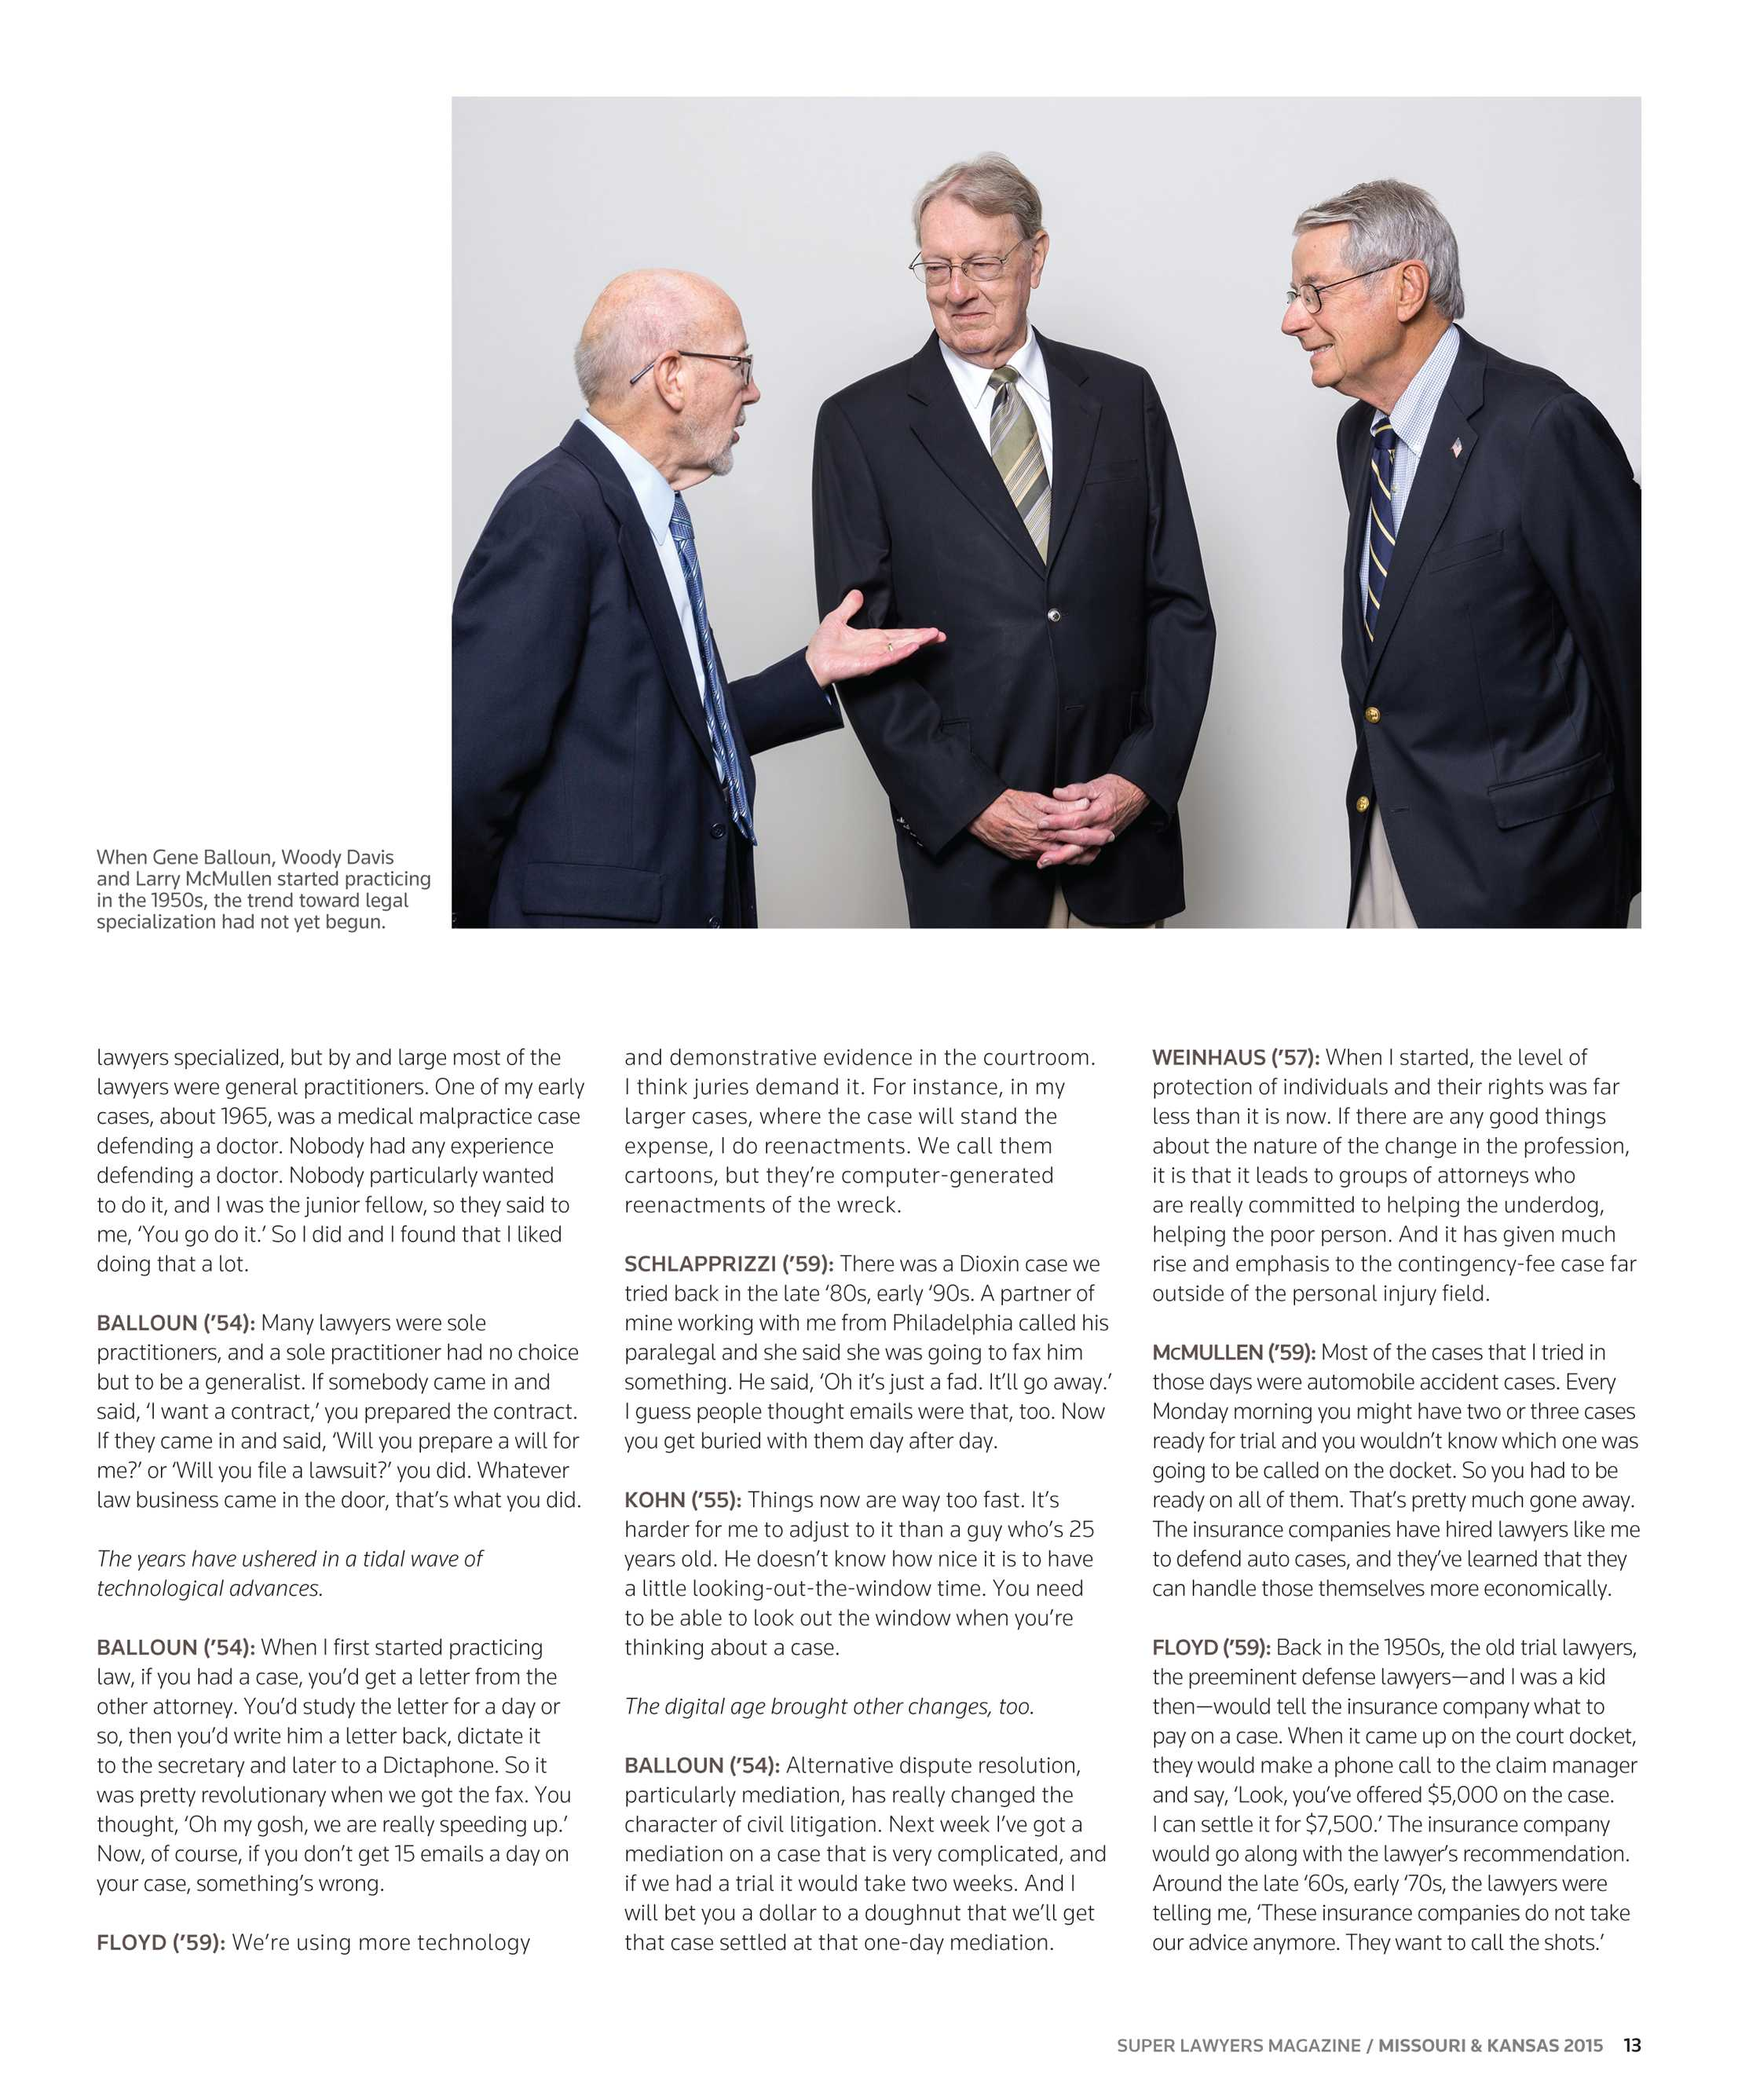 d2cf4bb9efd5 Super Lawyers - Missouri and Kansas 2015 - page 13